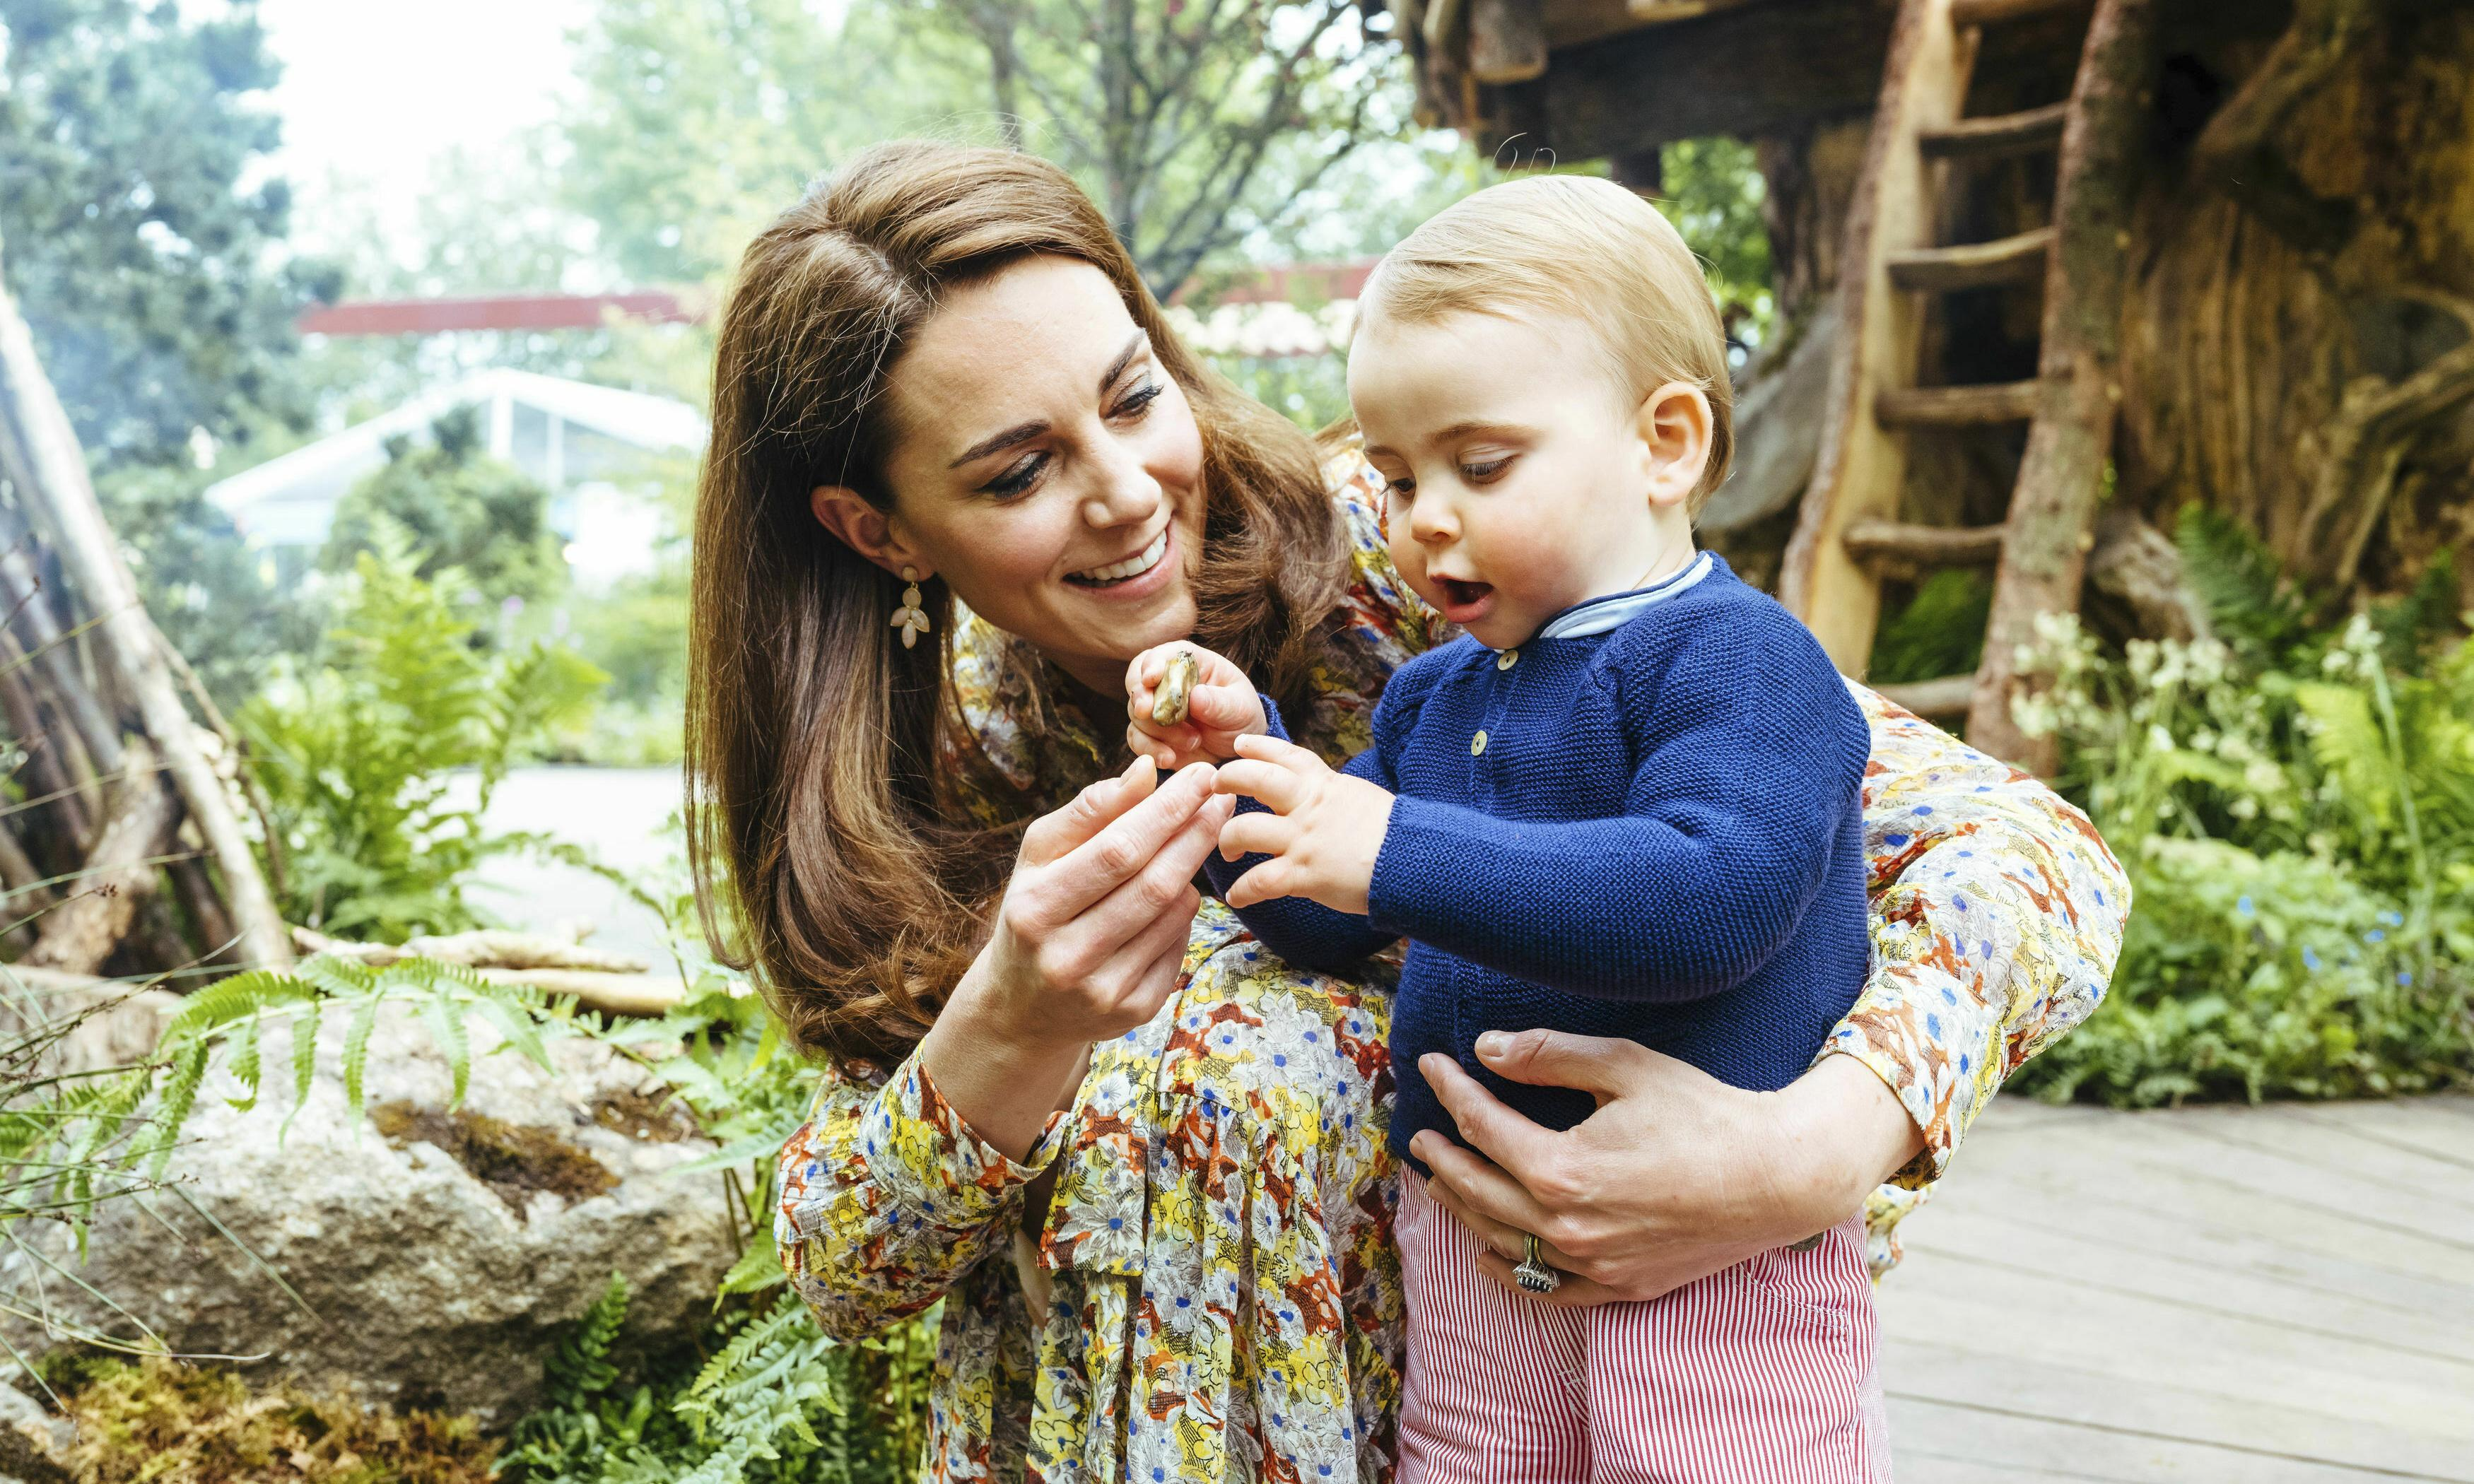 Chelsea flower show a right royal pity for commoners' kids